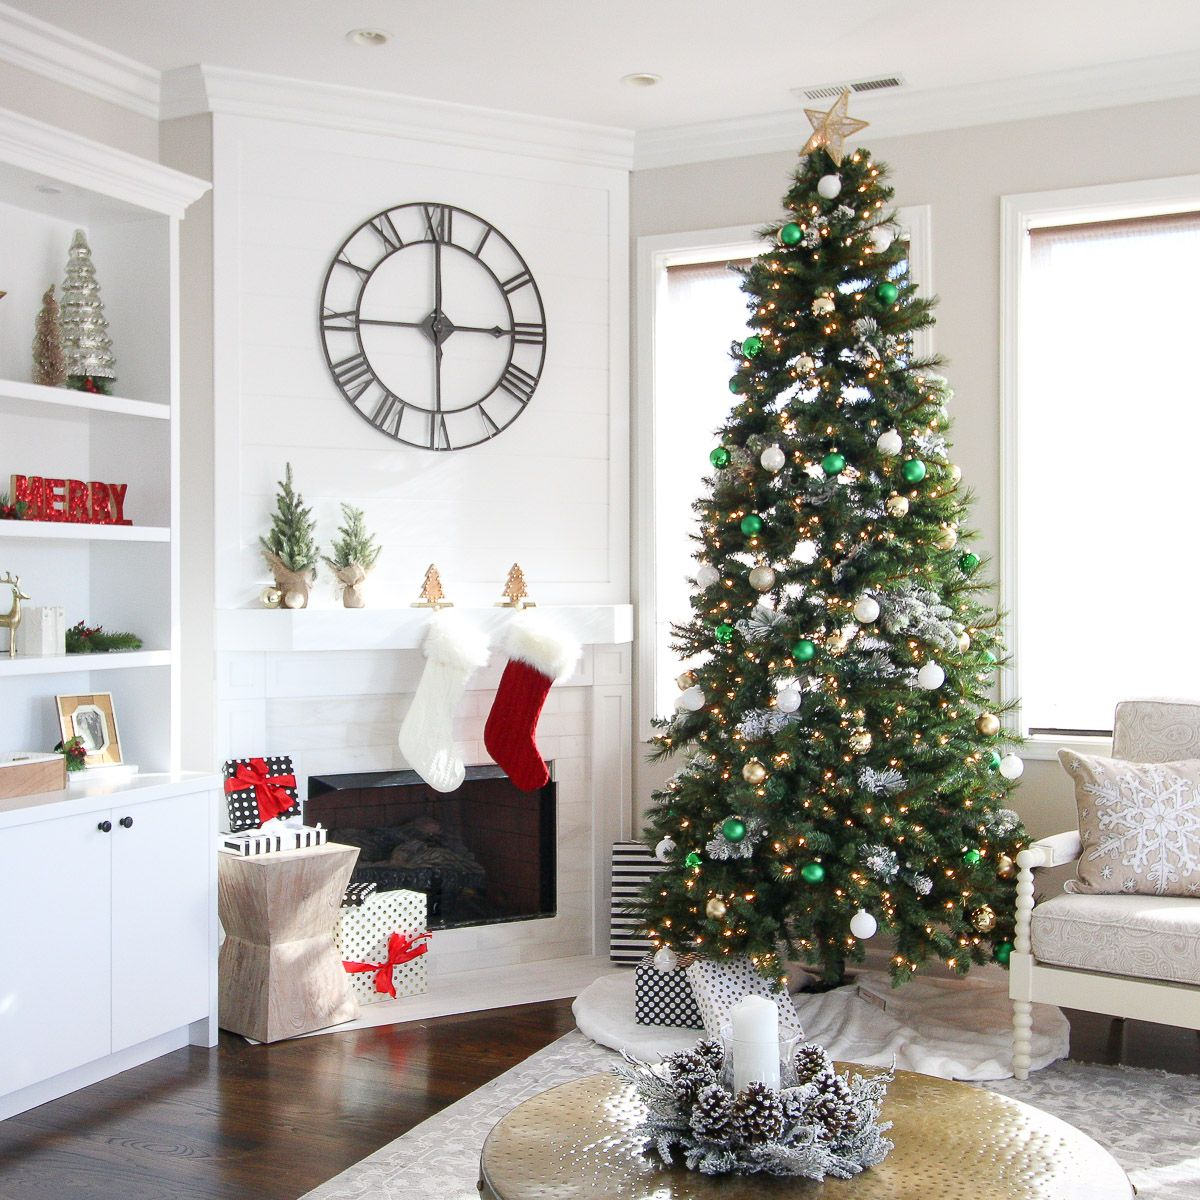 Holiday Decorating On A Budget Decor Home Decor Decorating On